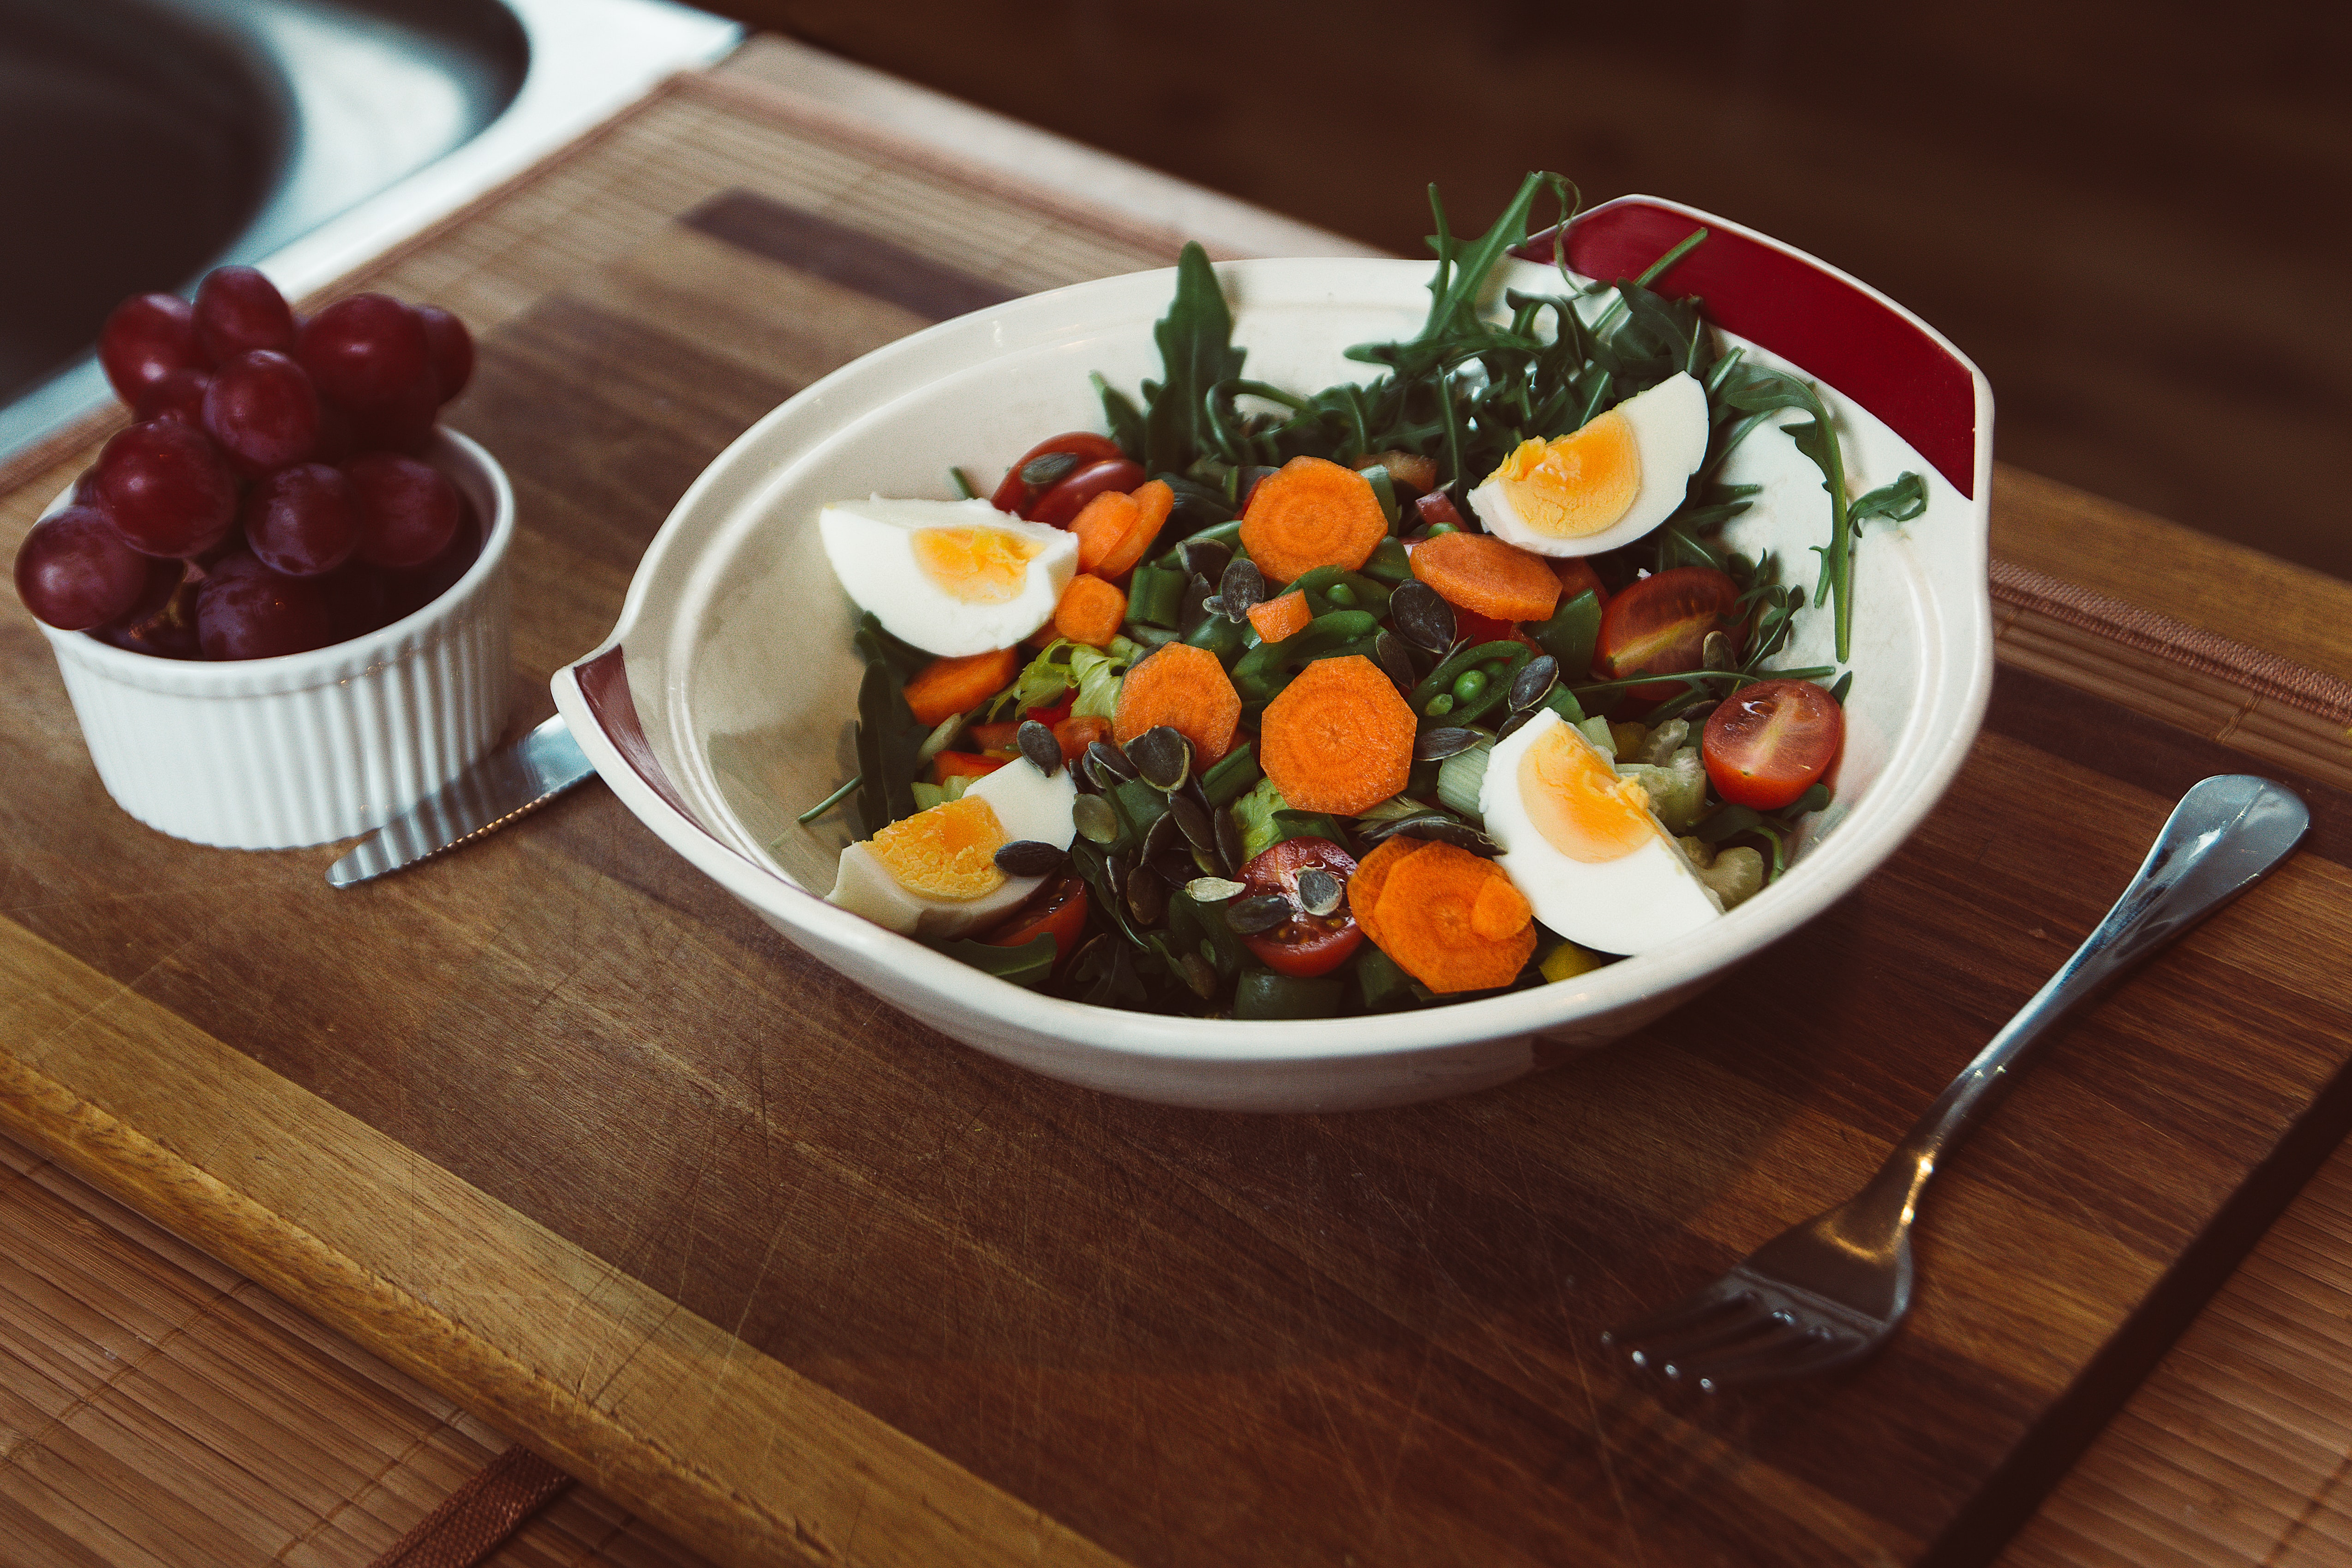 Healthy salad with egg, kale, carrots, and roasted veggies